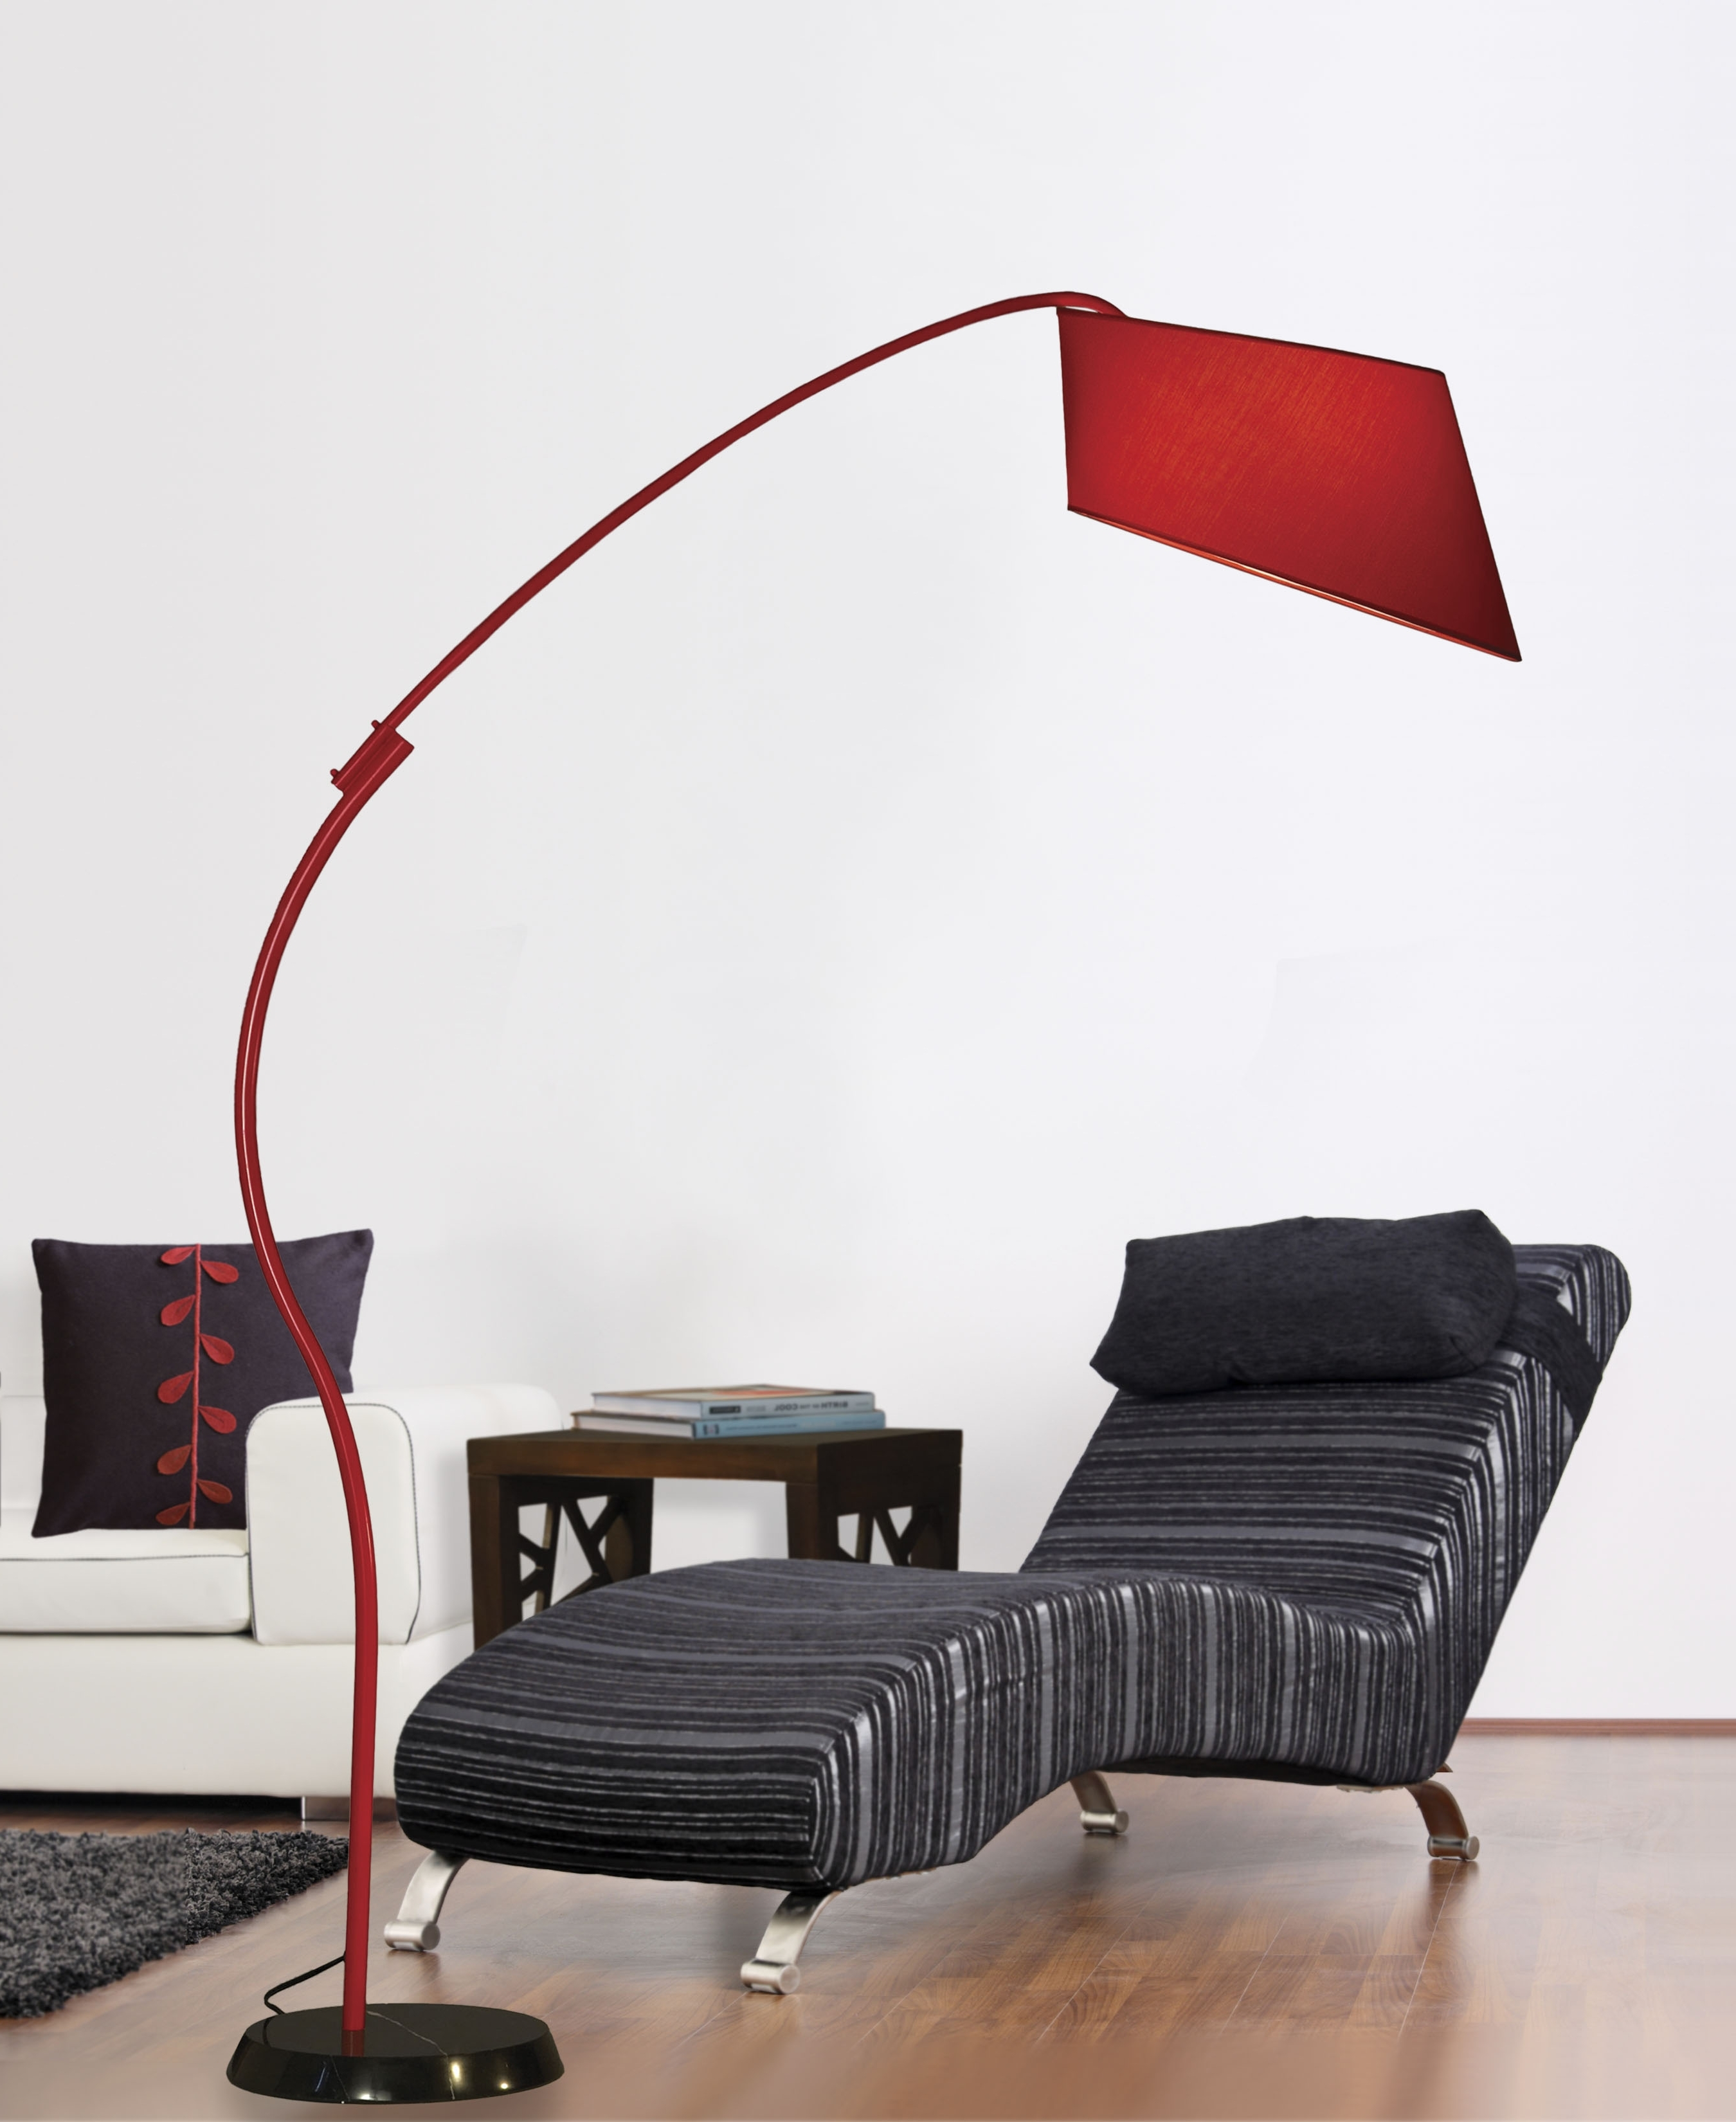 2018 Red Living Room Table Lamps For Pleasant Red Arc Floor Lamp Set For Bathroom Accessories Charming (View 10 of 20)